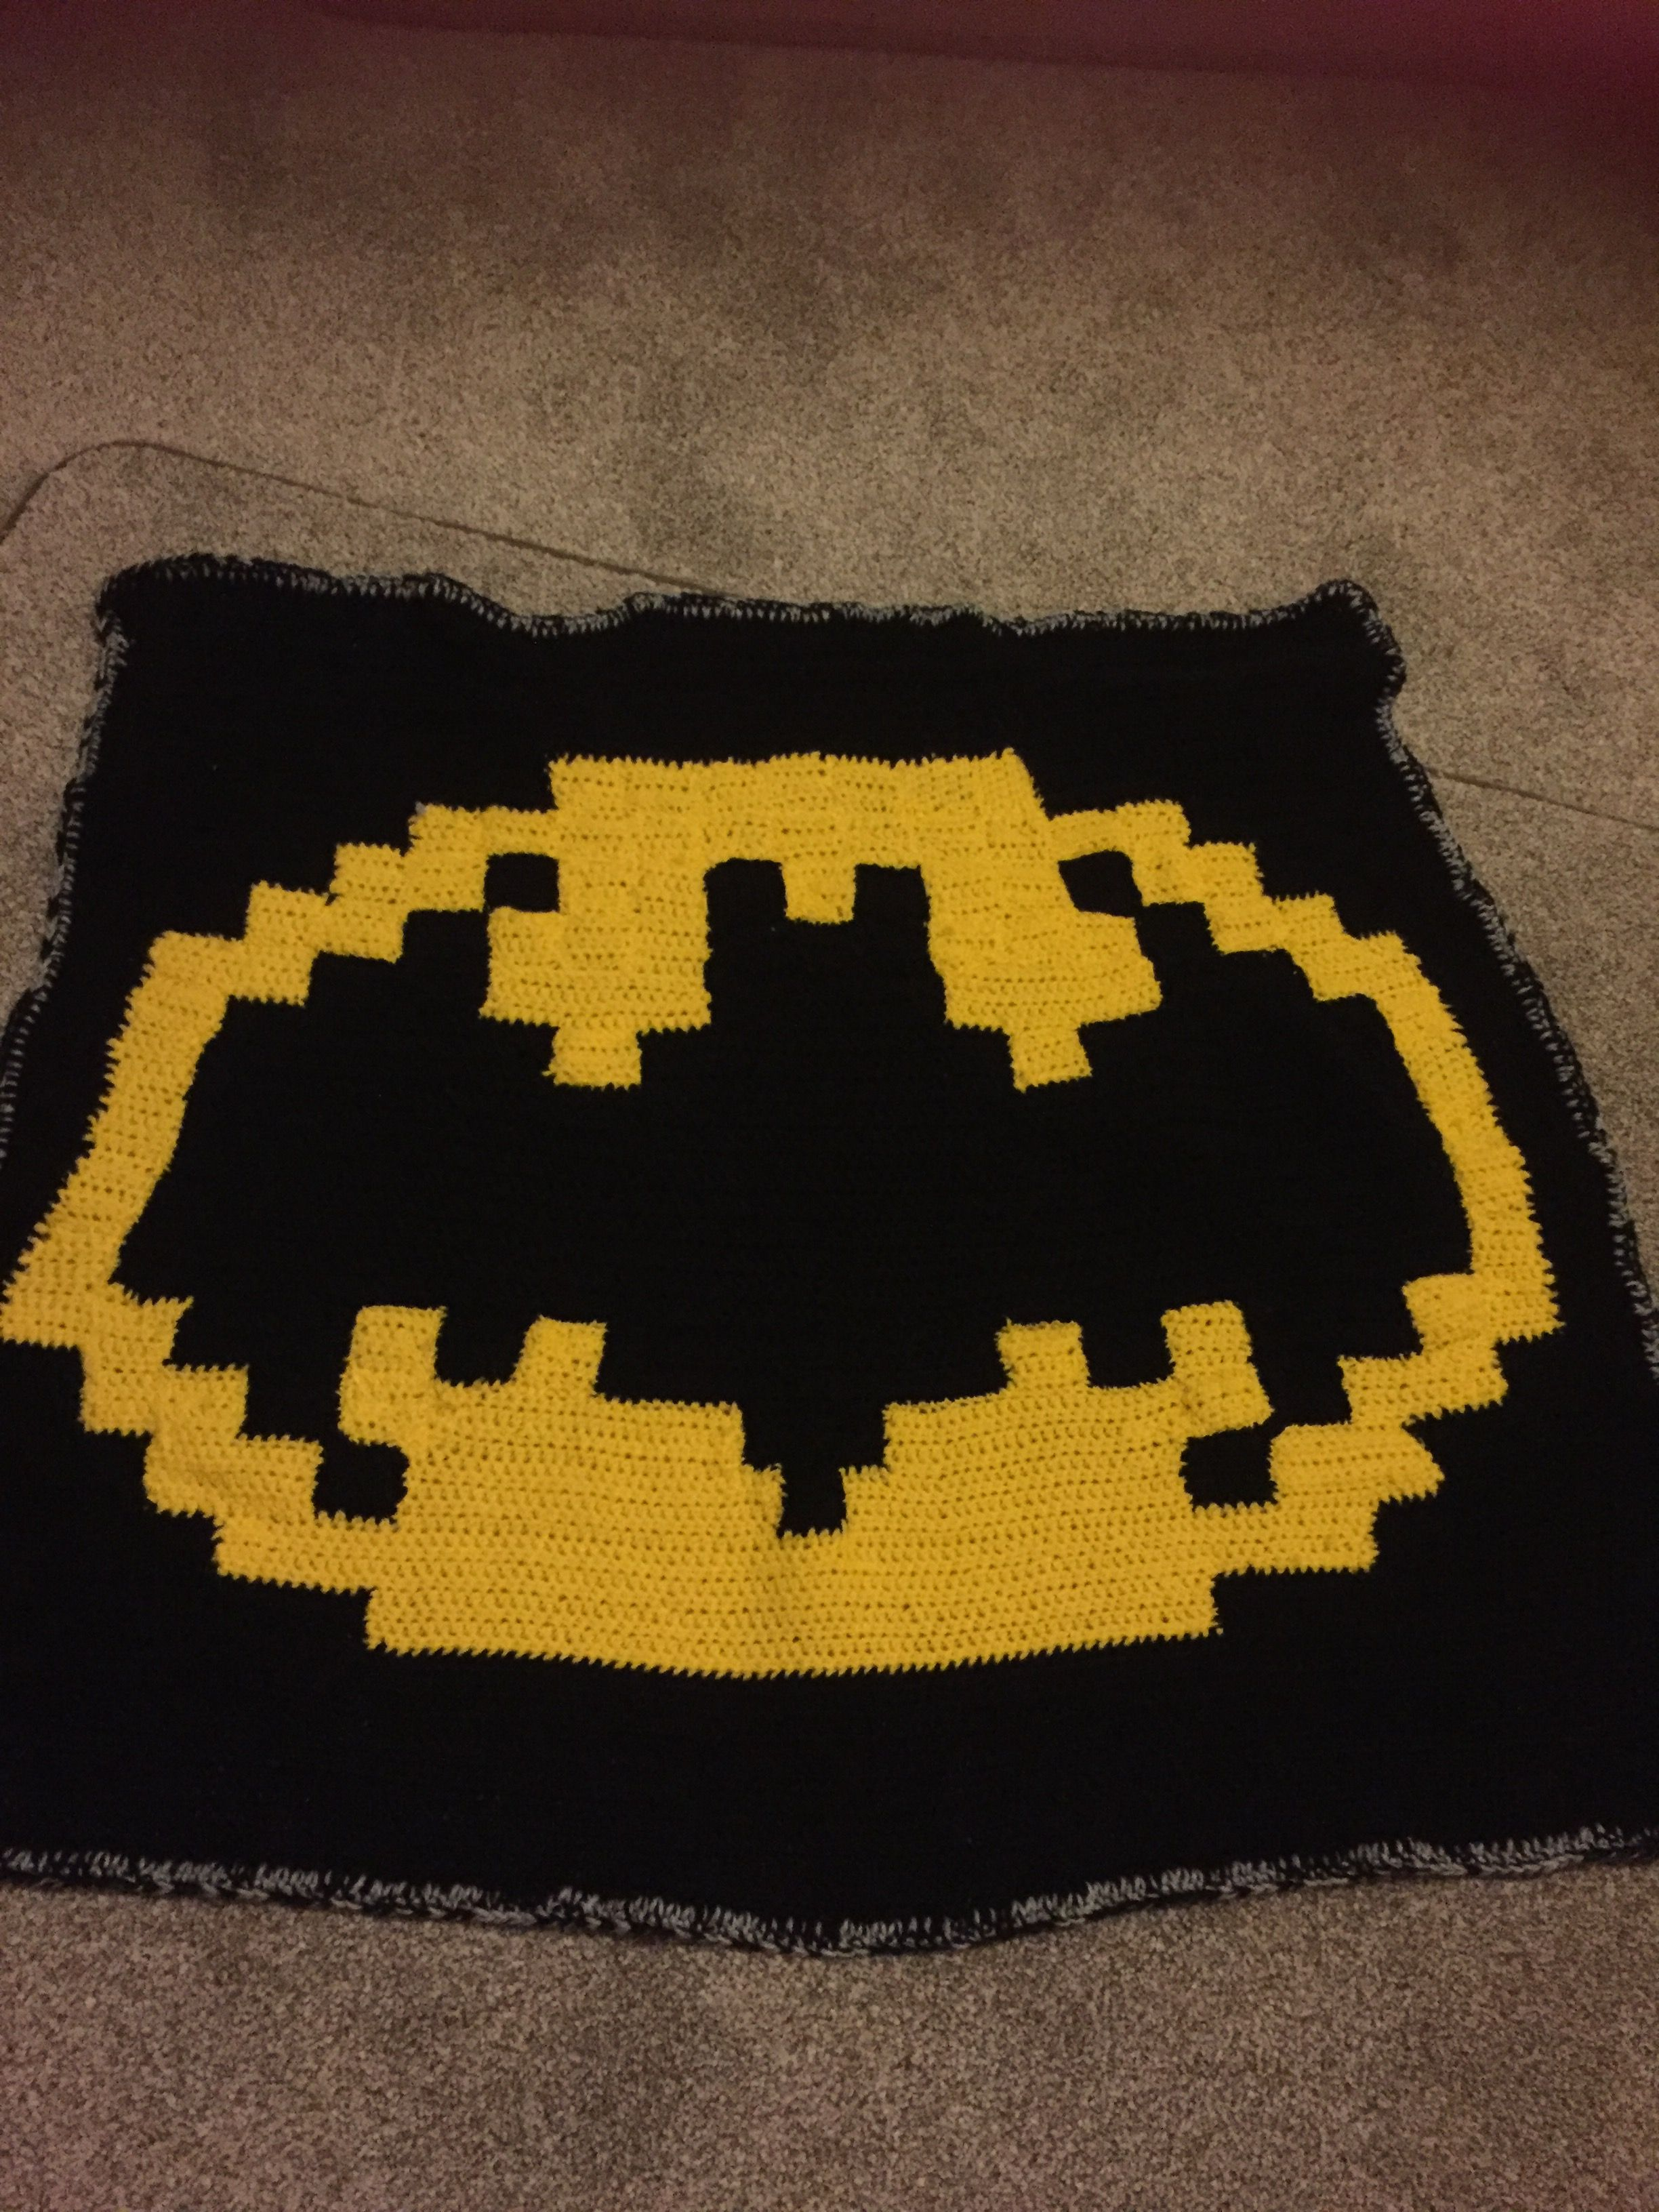 Crocheted Batman Blanket Used Graph Paper To Draw Logo My